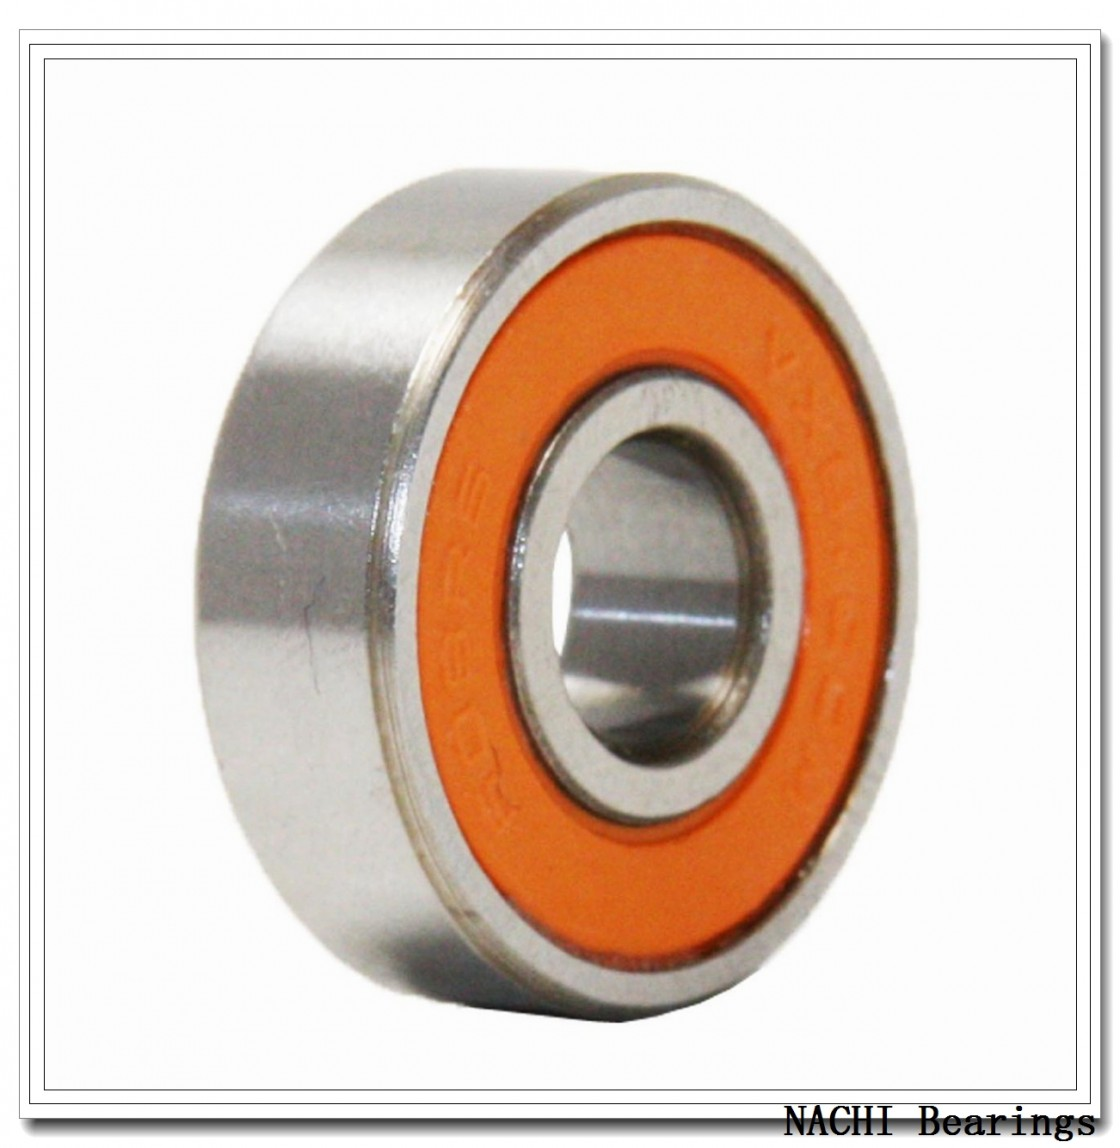 25 mm x 37 mm x 7 mm  NACHI 6805NR deep groove ball bearings